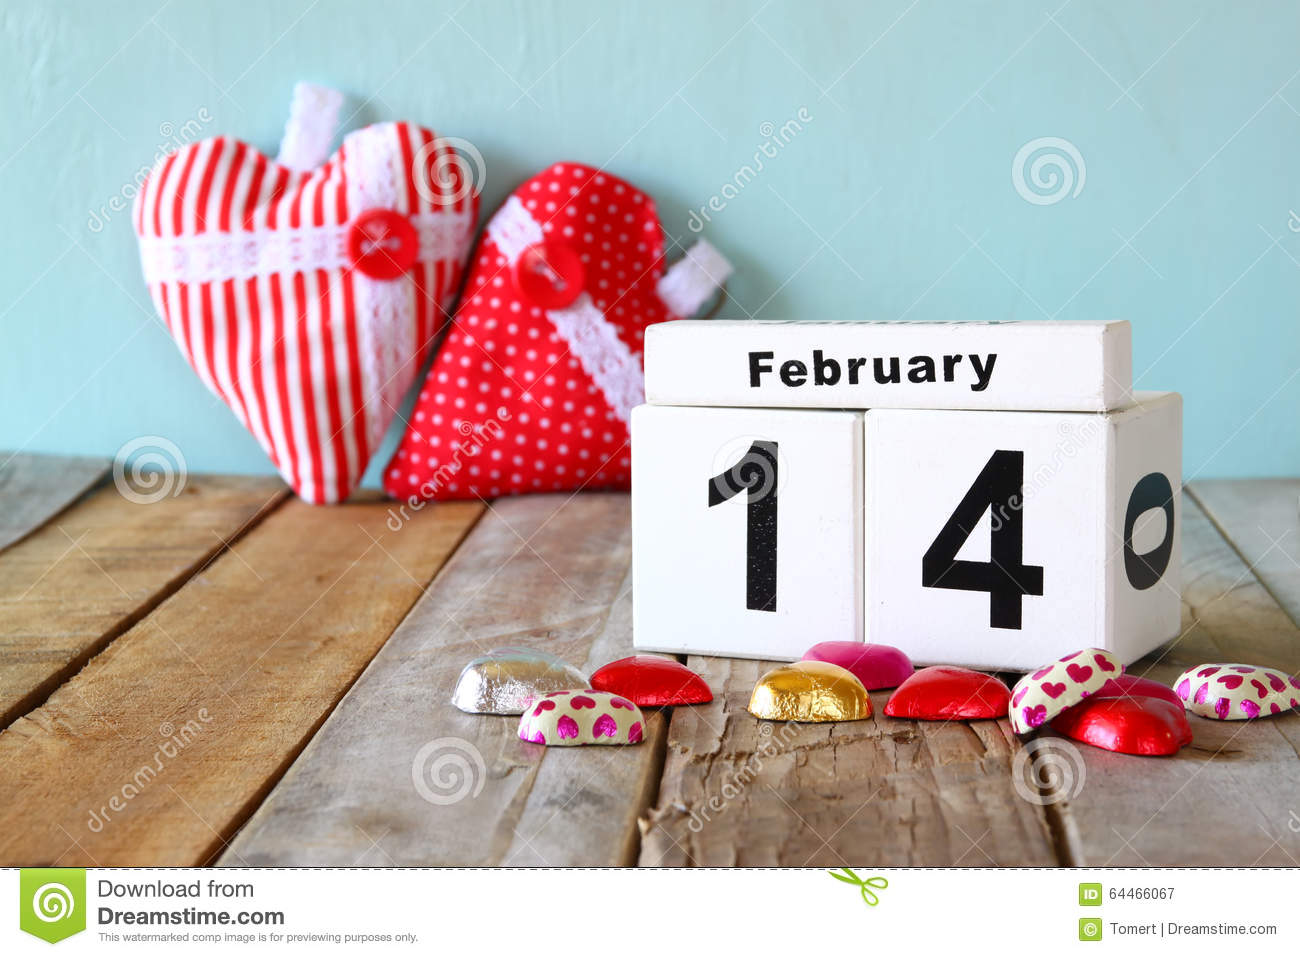 February 14th wooden vintage calendar with colorful heart shape chocolates on wooden table. selective focus.